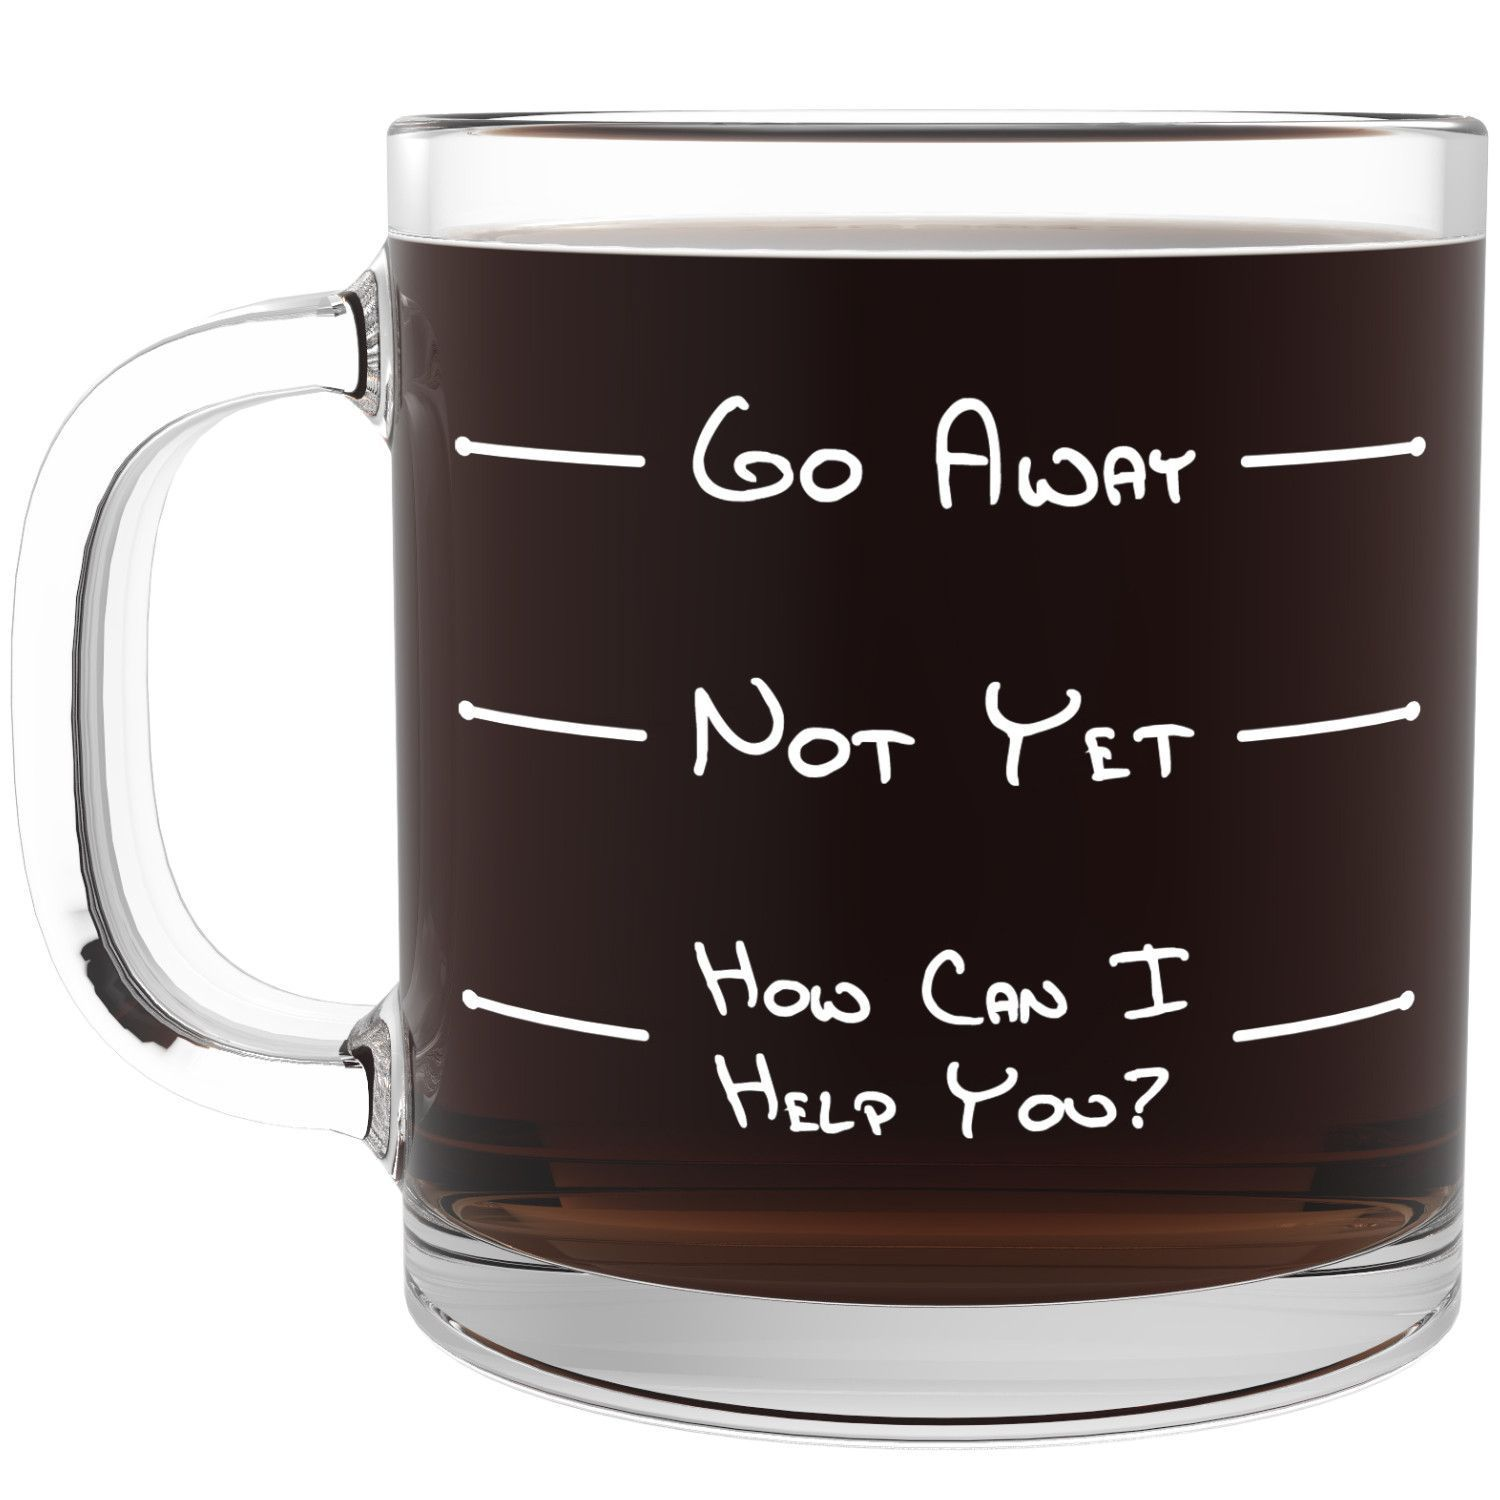 A Coffee mug for people who just don't understand.